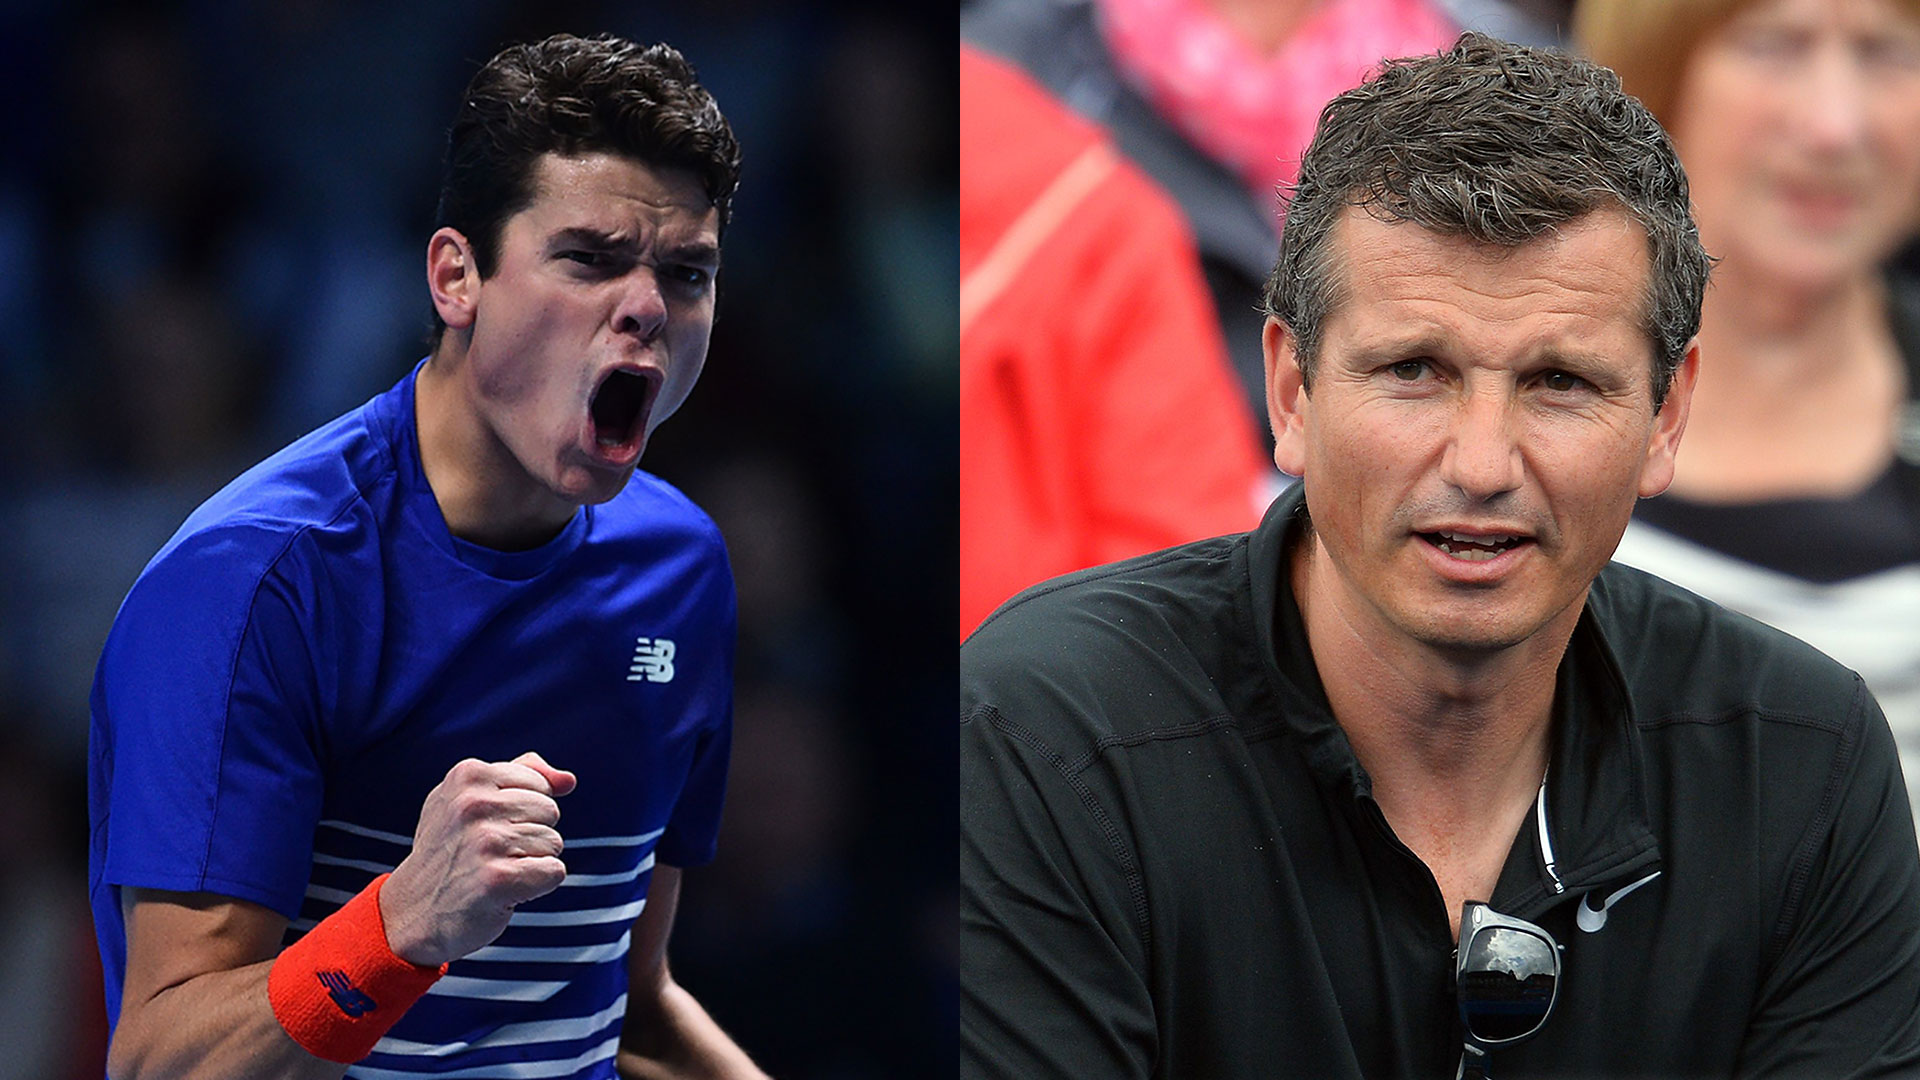 Milos Raonic will work with Richard Krajicek in 2017.